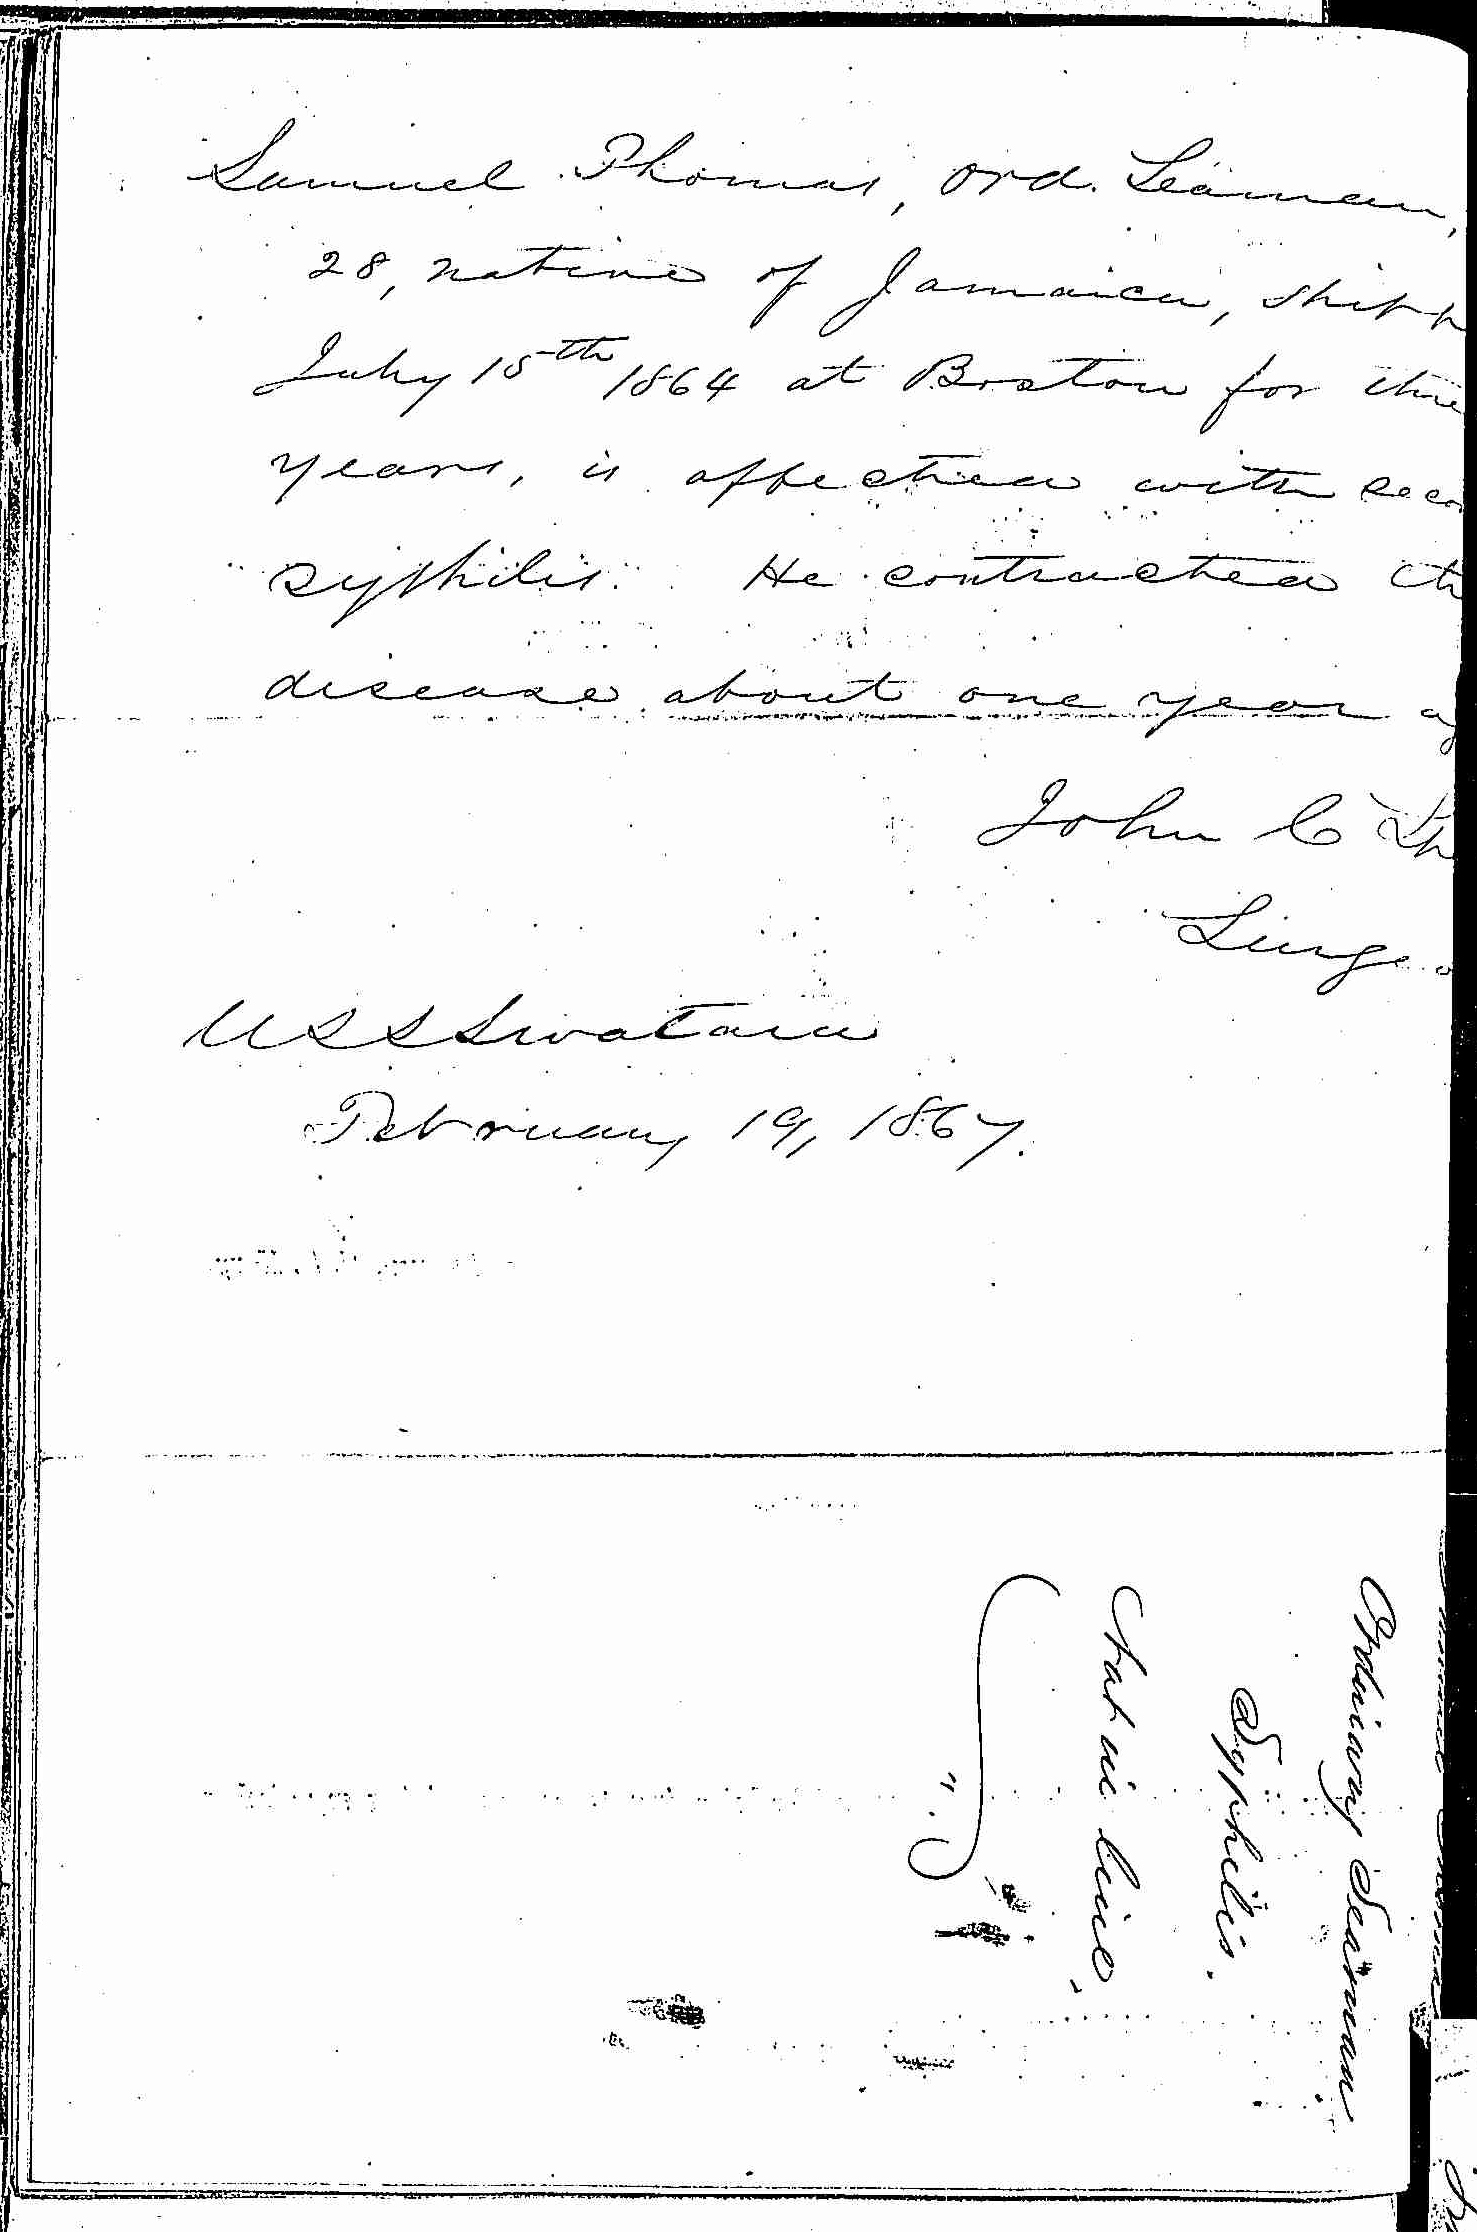 Entry for Samuel Thomas (page 2 of 2) in the log Hospital Tickets and Case Papers - Naval Hospital - Washington, D.C. - 1866-68